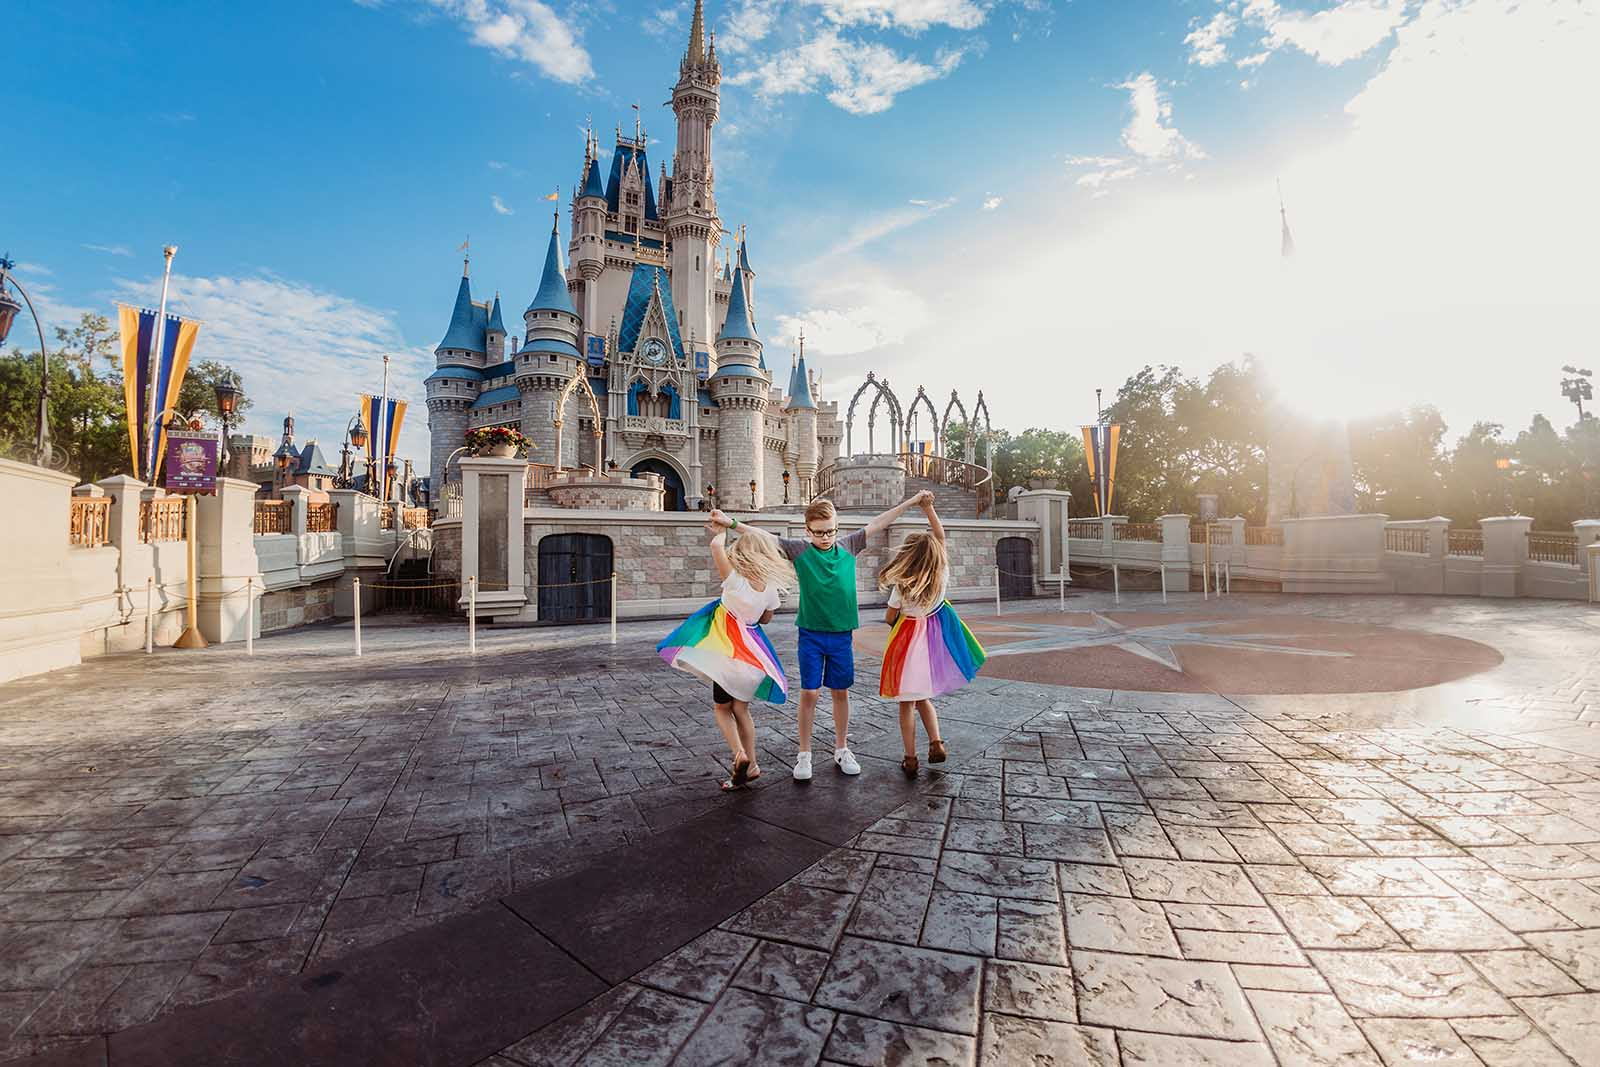 Colorful photo of kids at Disney - How to use color in photography - Rainbow prop